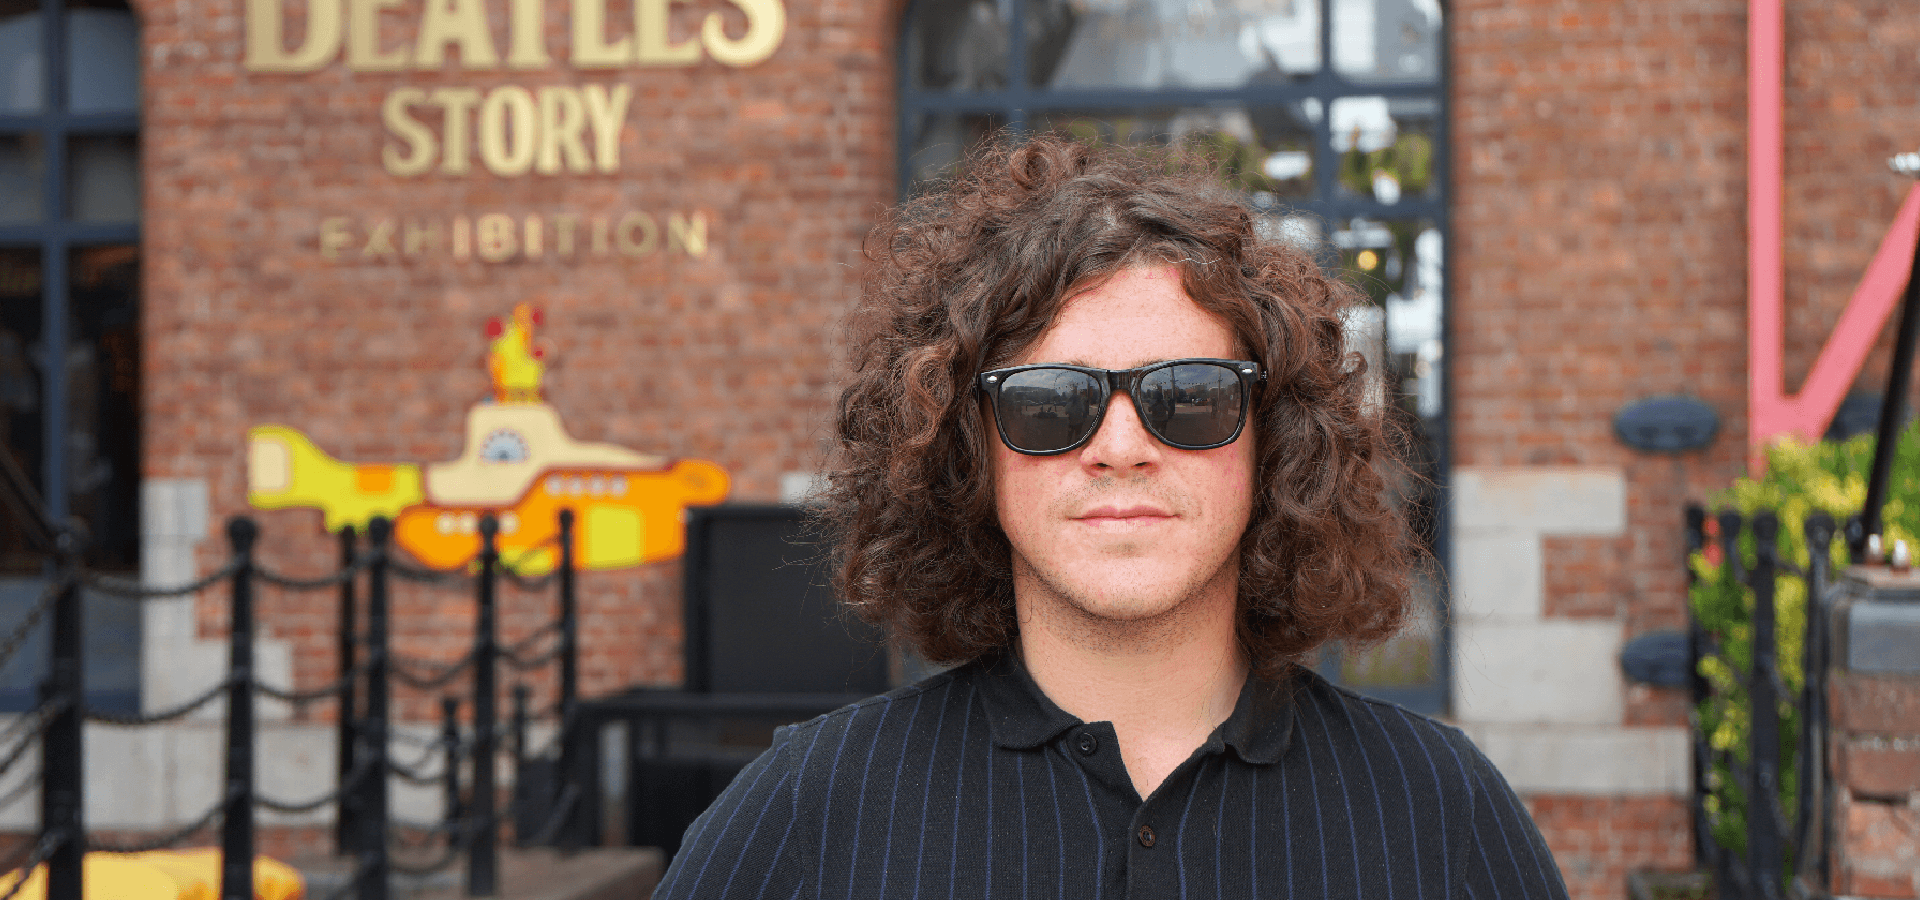 Kyle Falconer: The View frontman visits The Beatles Story